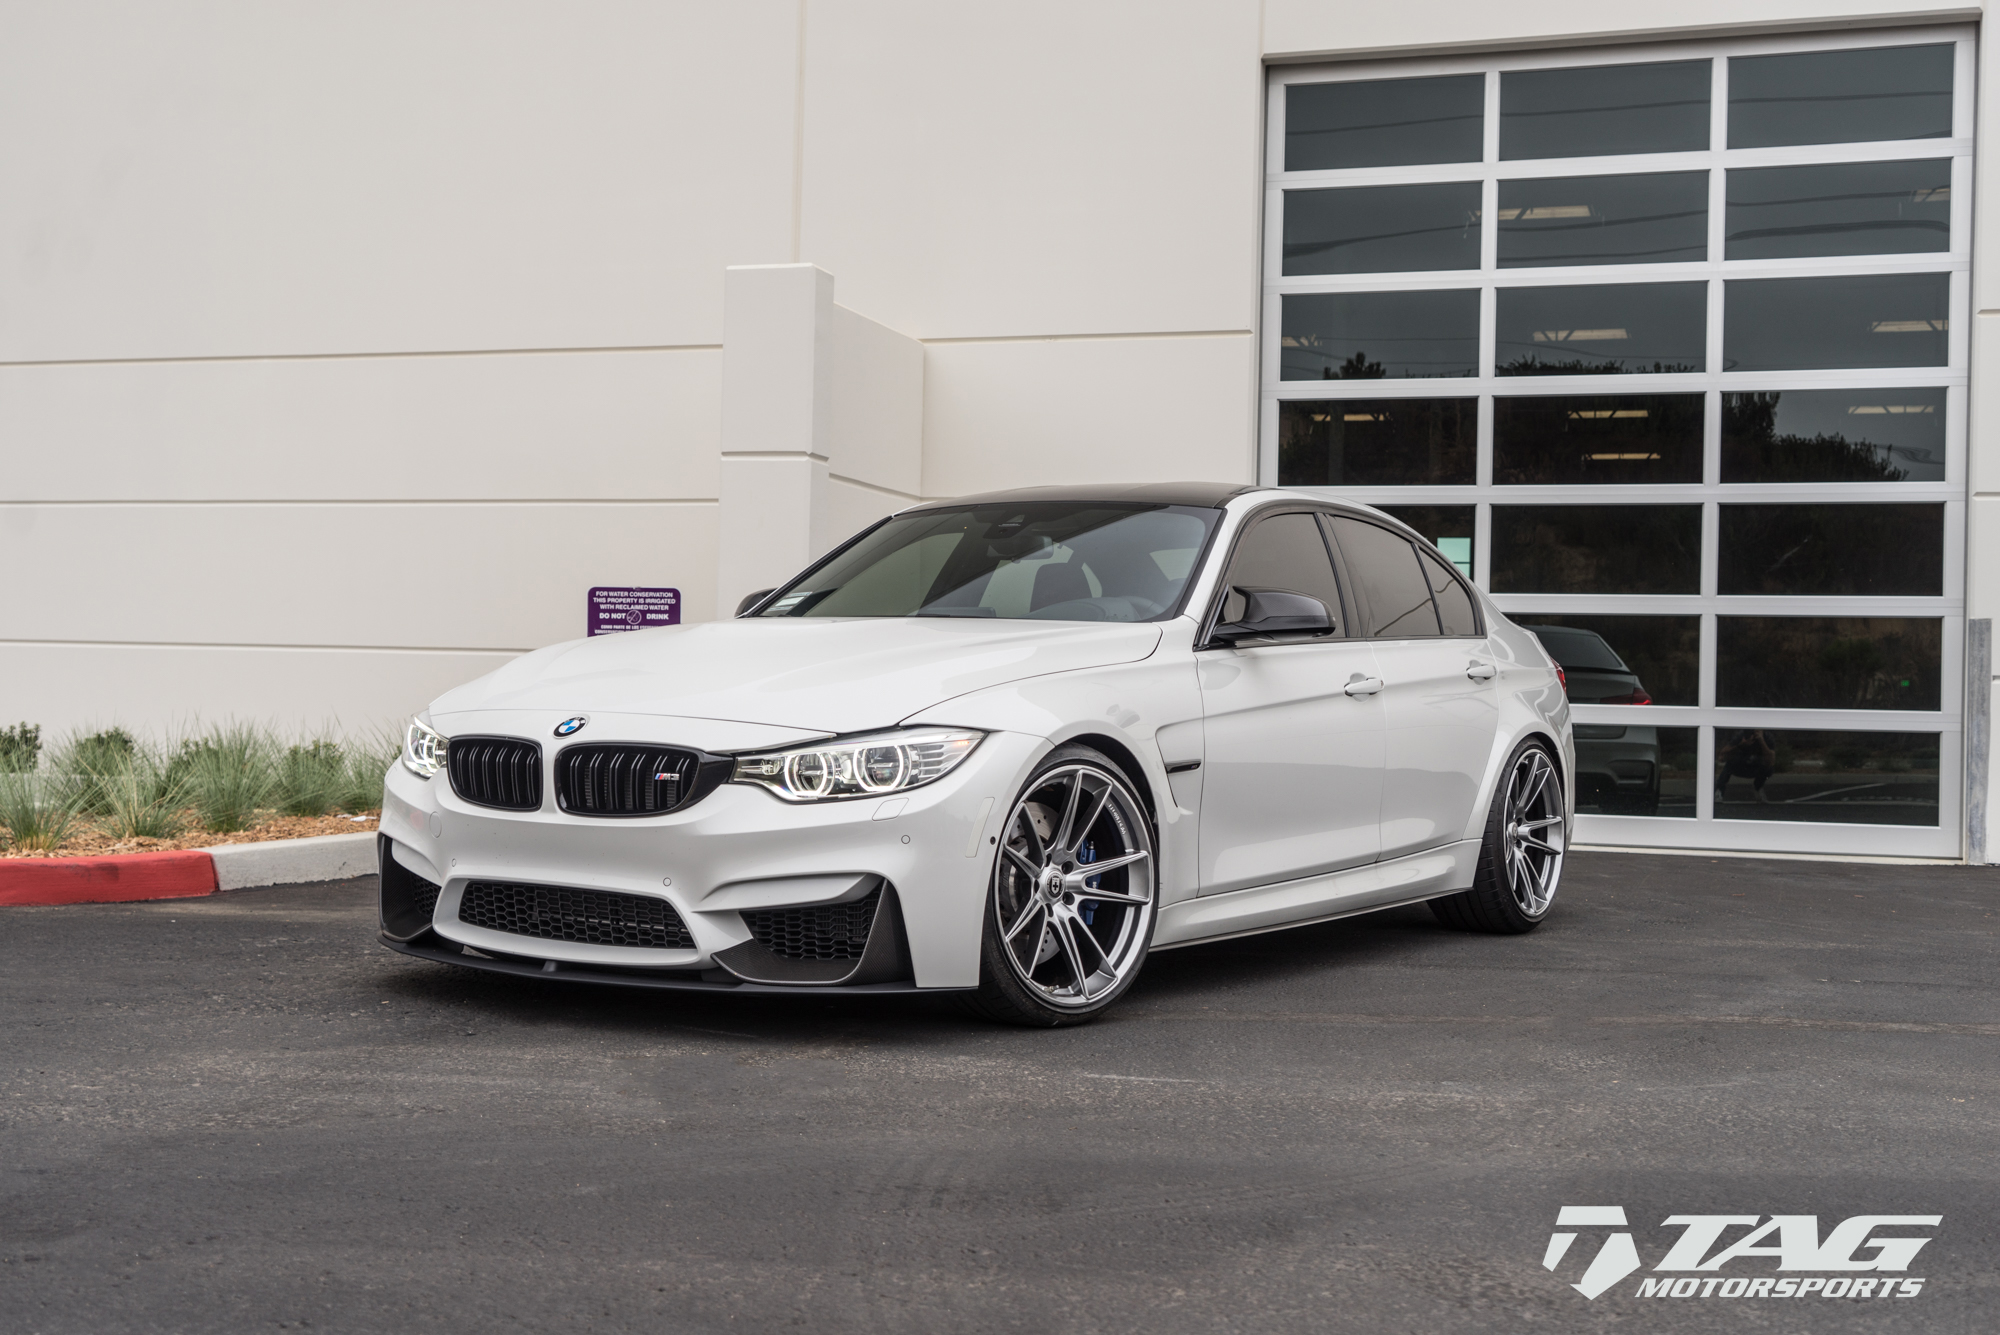 Clean F80 With Some Wonderful Touches